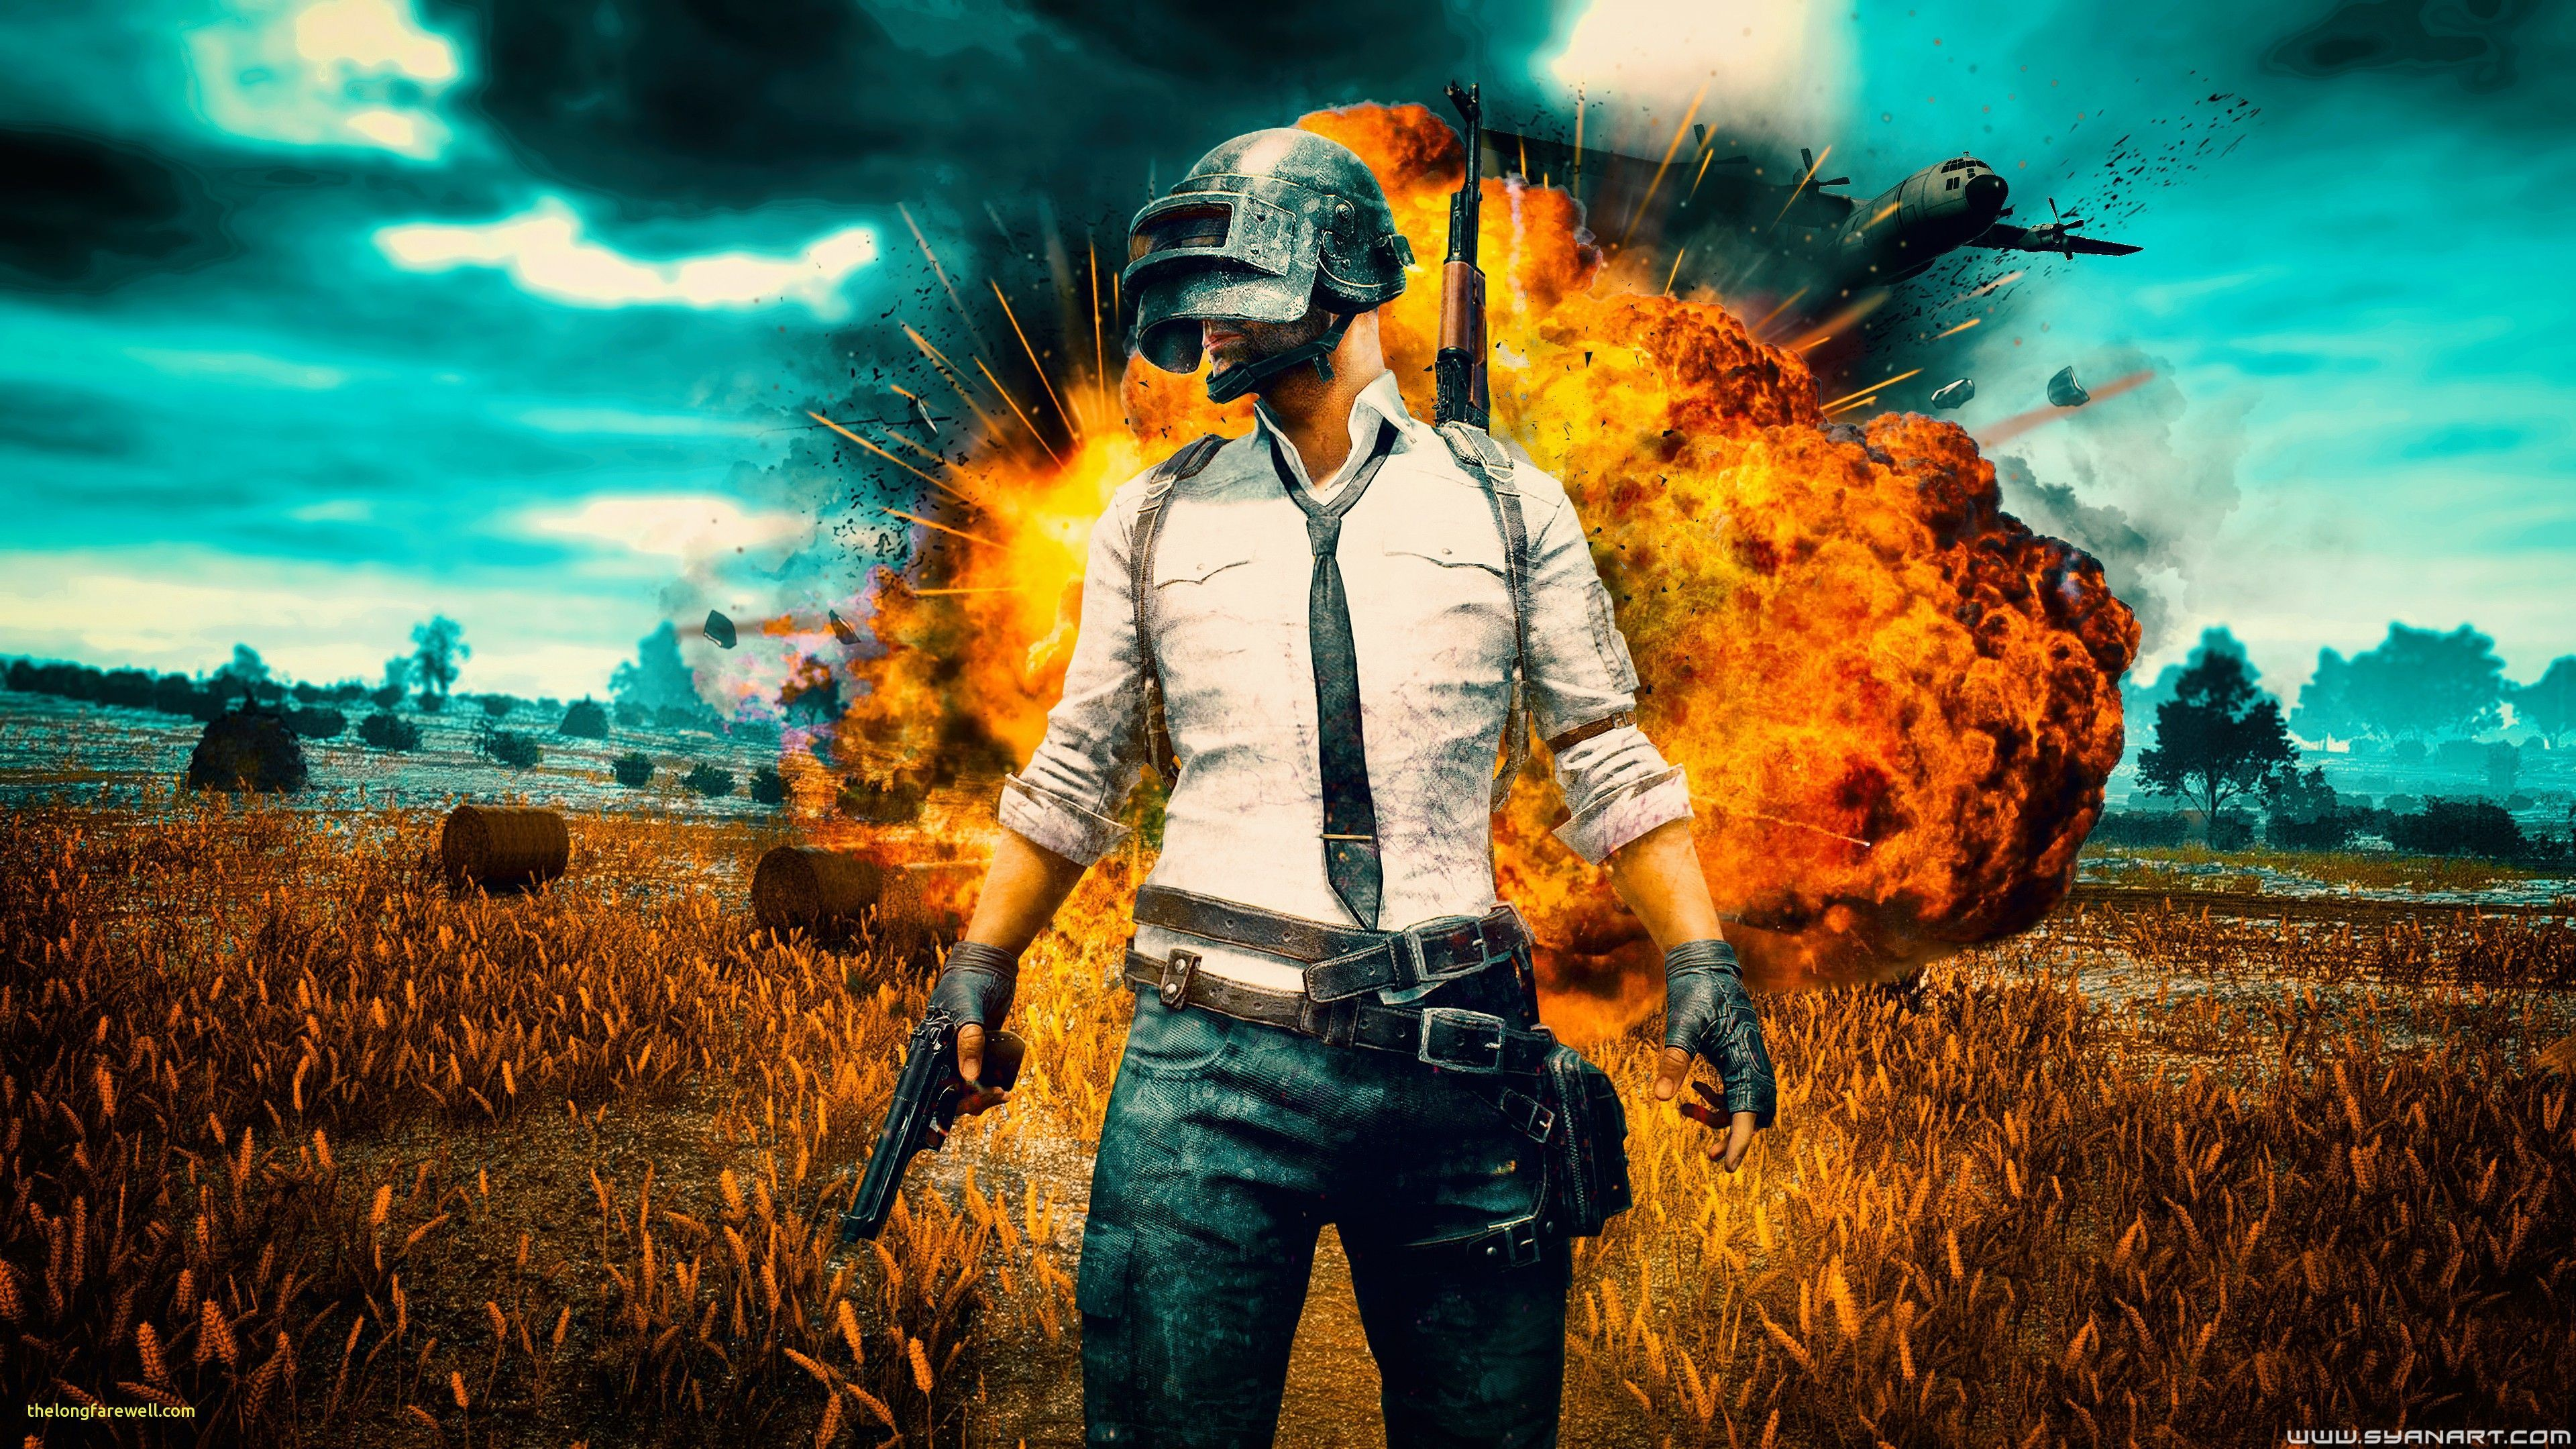 Pubg Wallpaper Phone: PUBG 4K Gaming Wallpapers